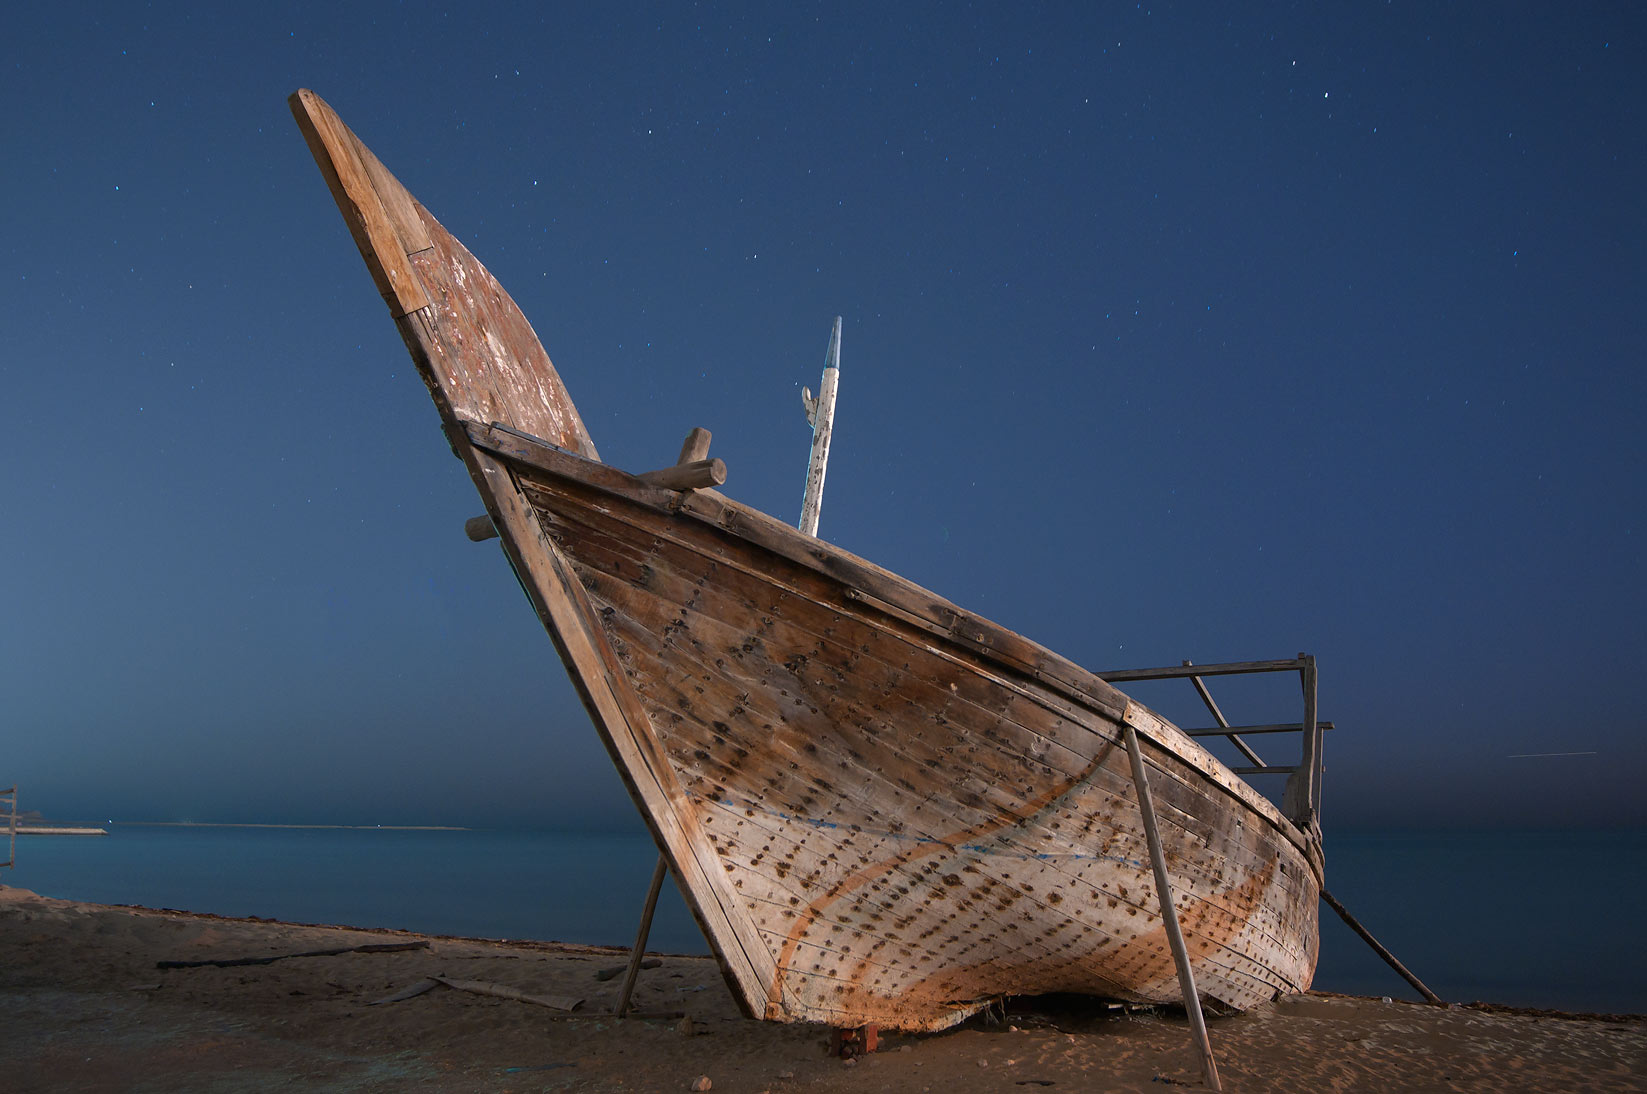 Dhow fishing boat on a beach in heritage village. Al Wakrah, Qatar